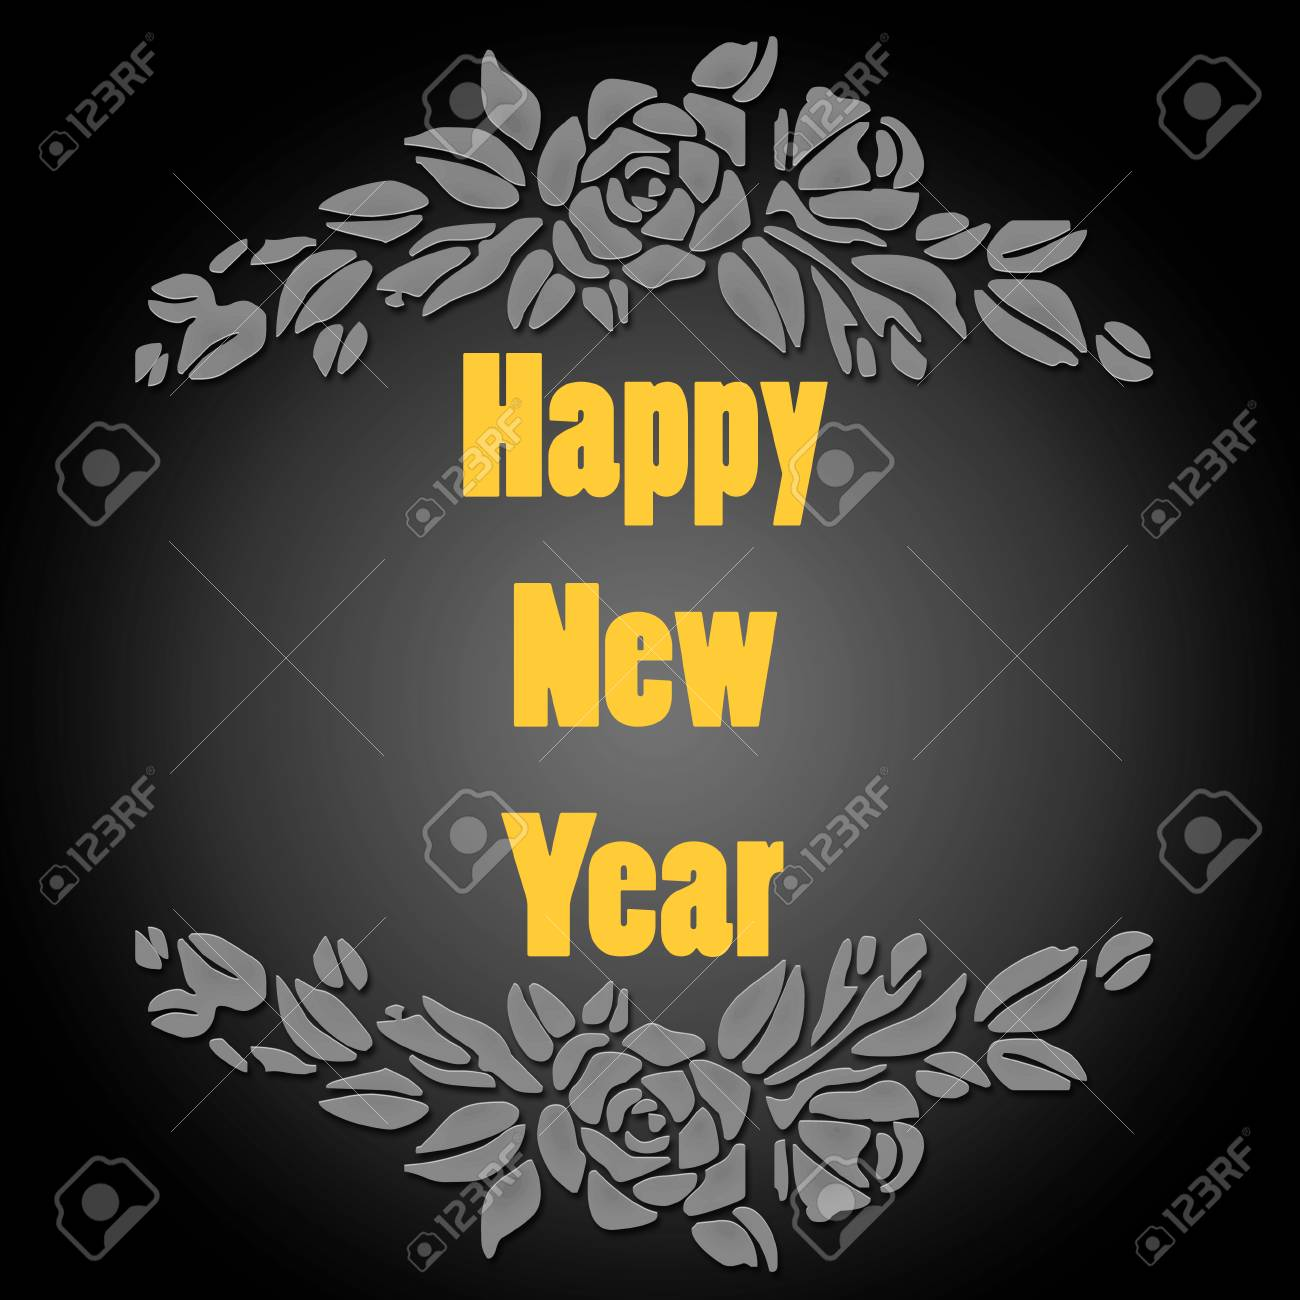 new year greetings with text happy new year on a grey background stock photo 69710467